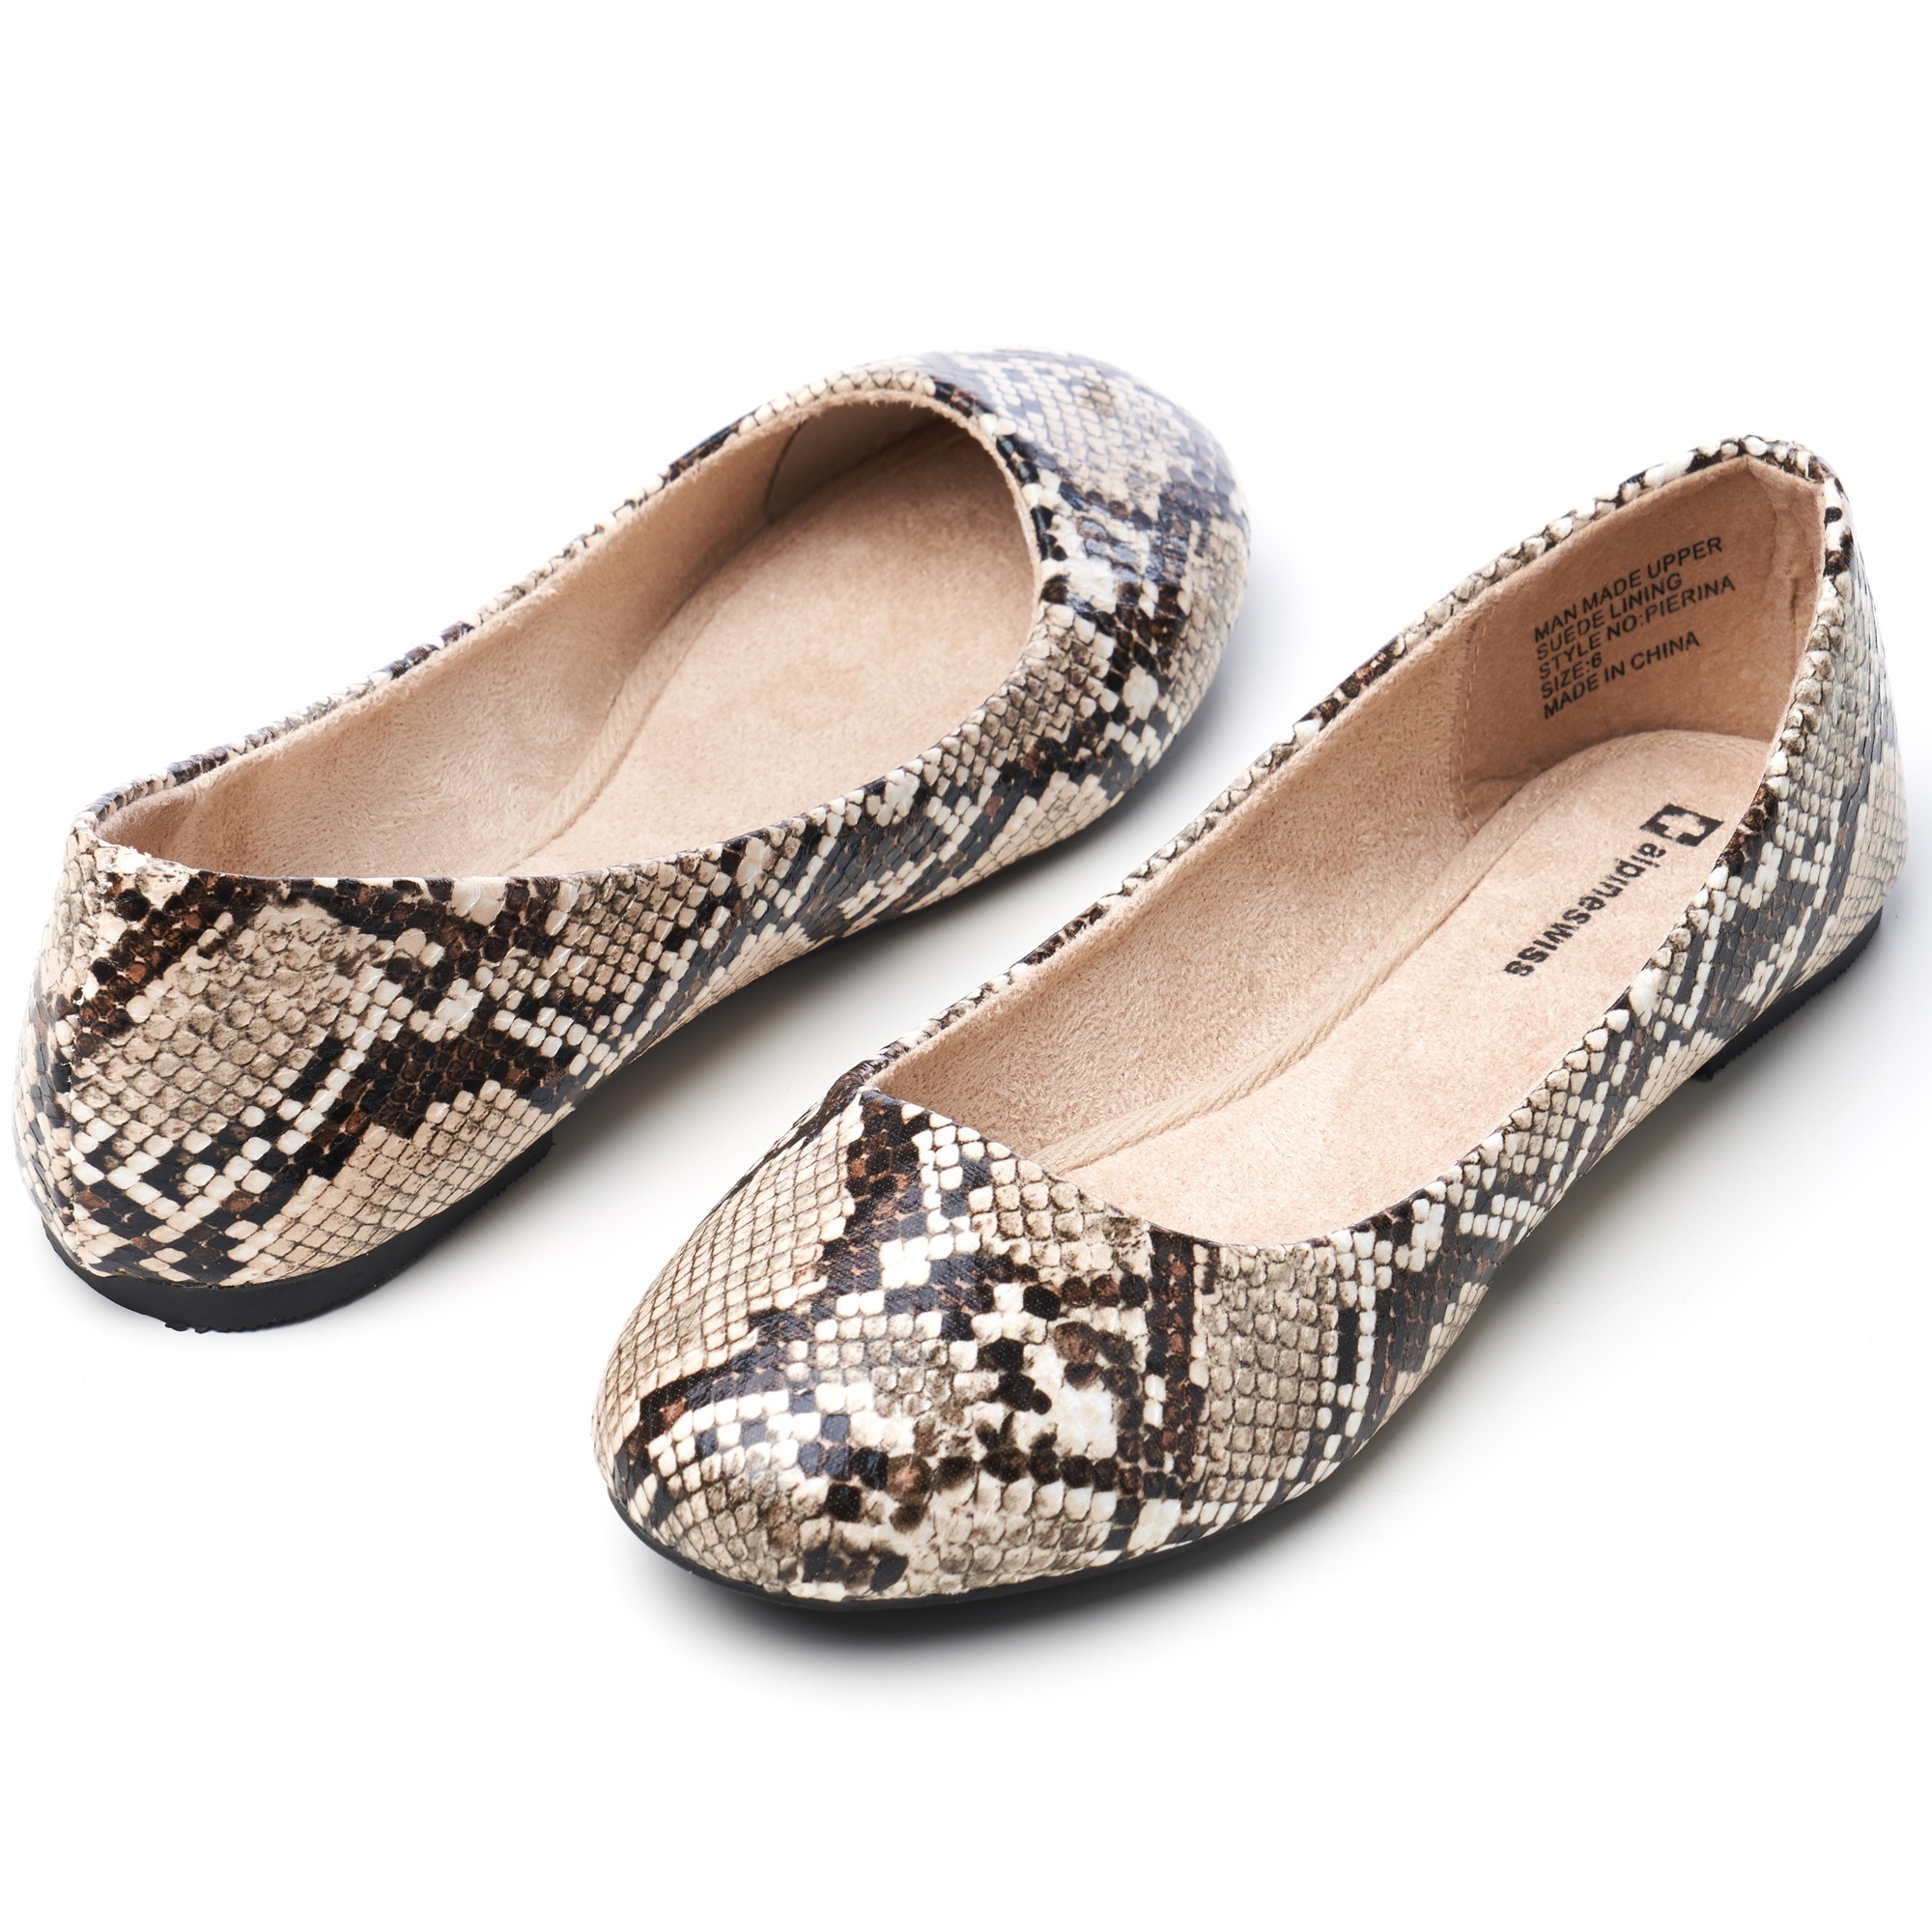 Alpine-Swiss-Pierina-Womens-Ballet-Flats-Leather-Lined-Classic-Slip-On-Shoes thumbnail 22